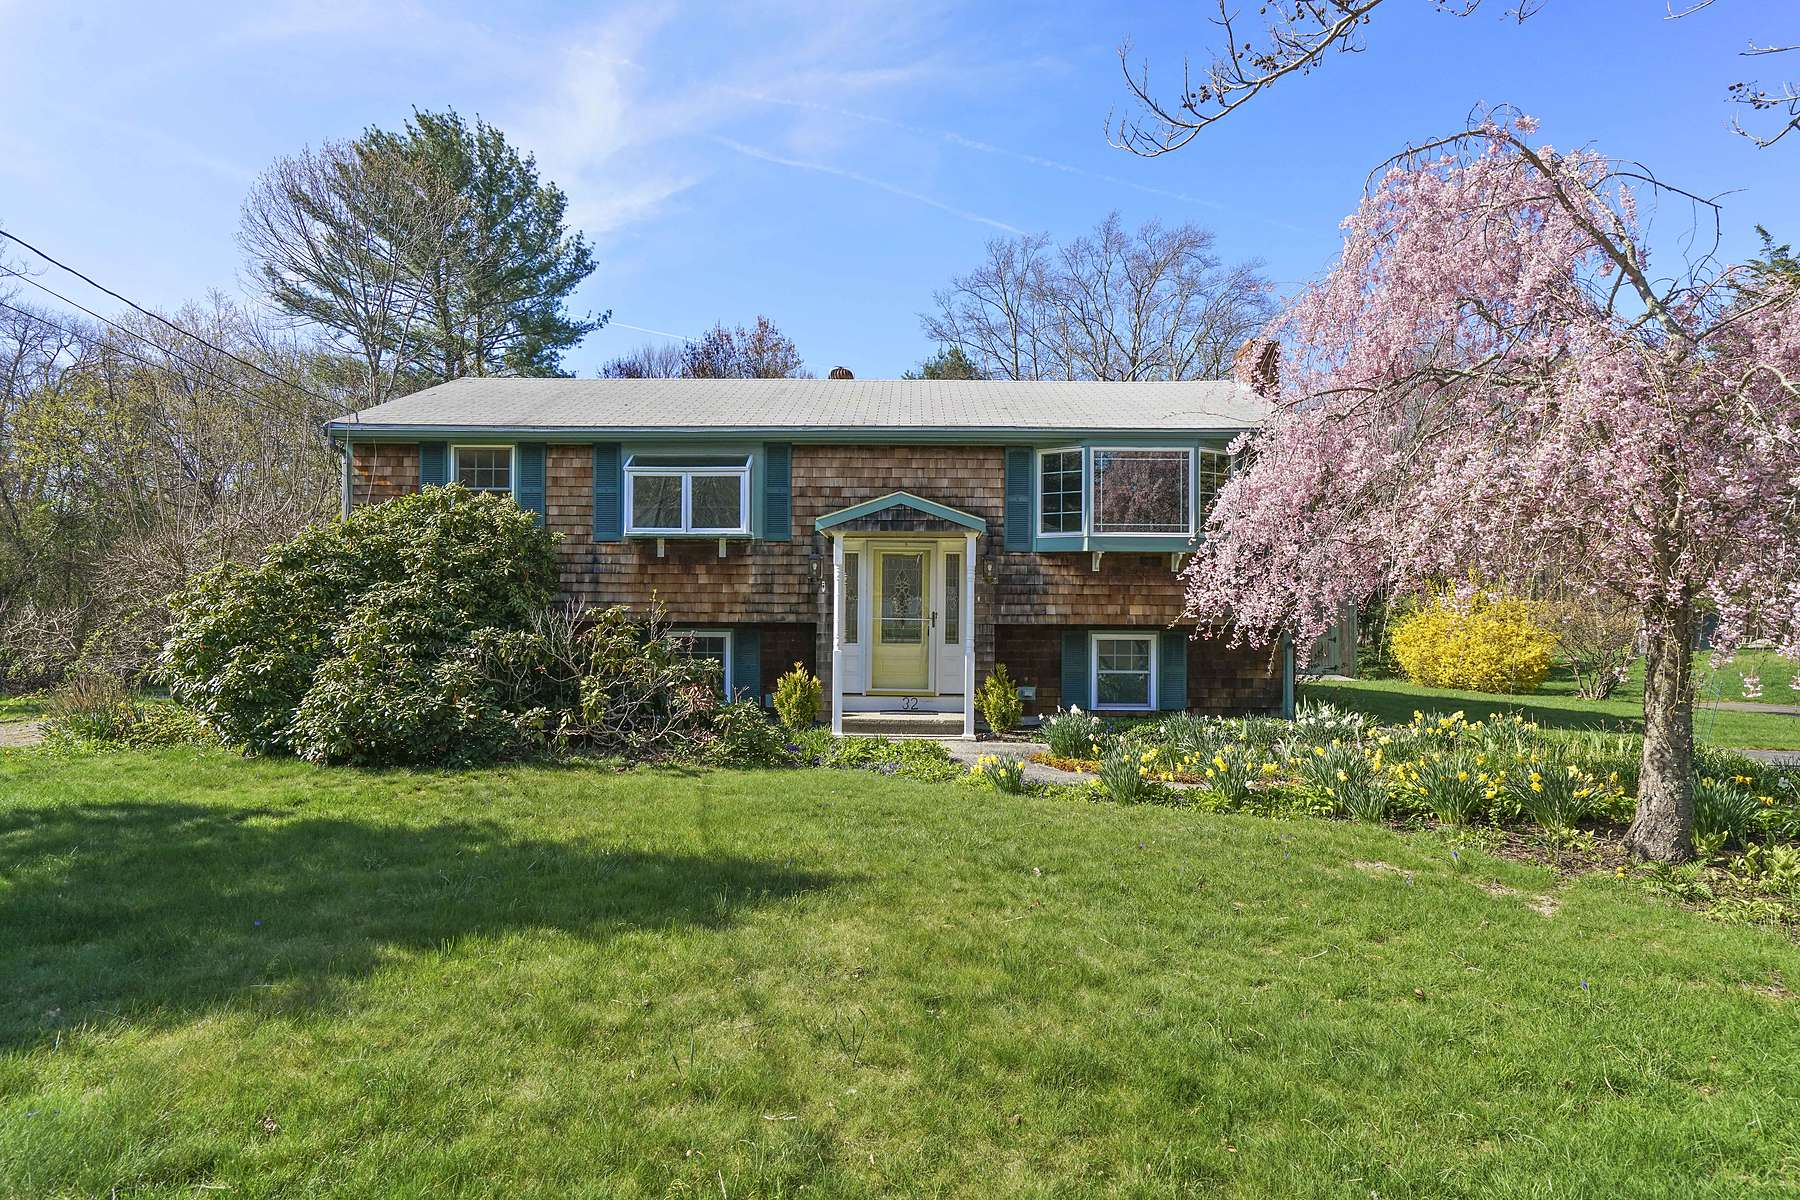 Single Family Home for Active at 32 Summer Street Rockland, Massachusetts 02370 United States